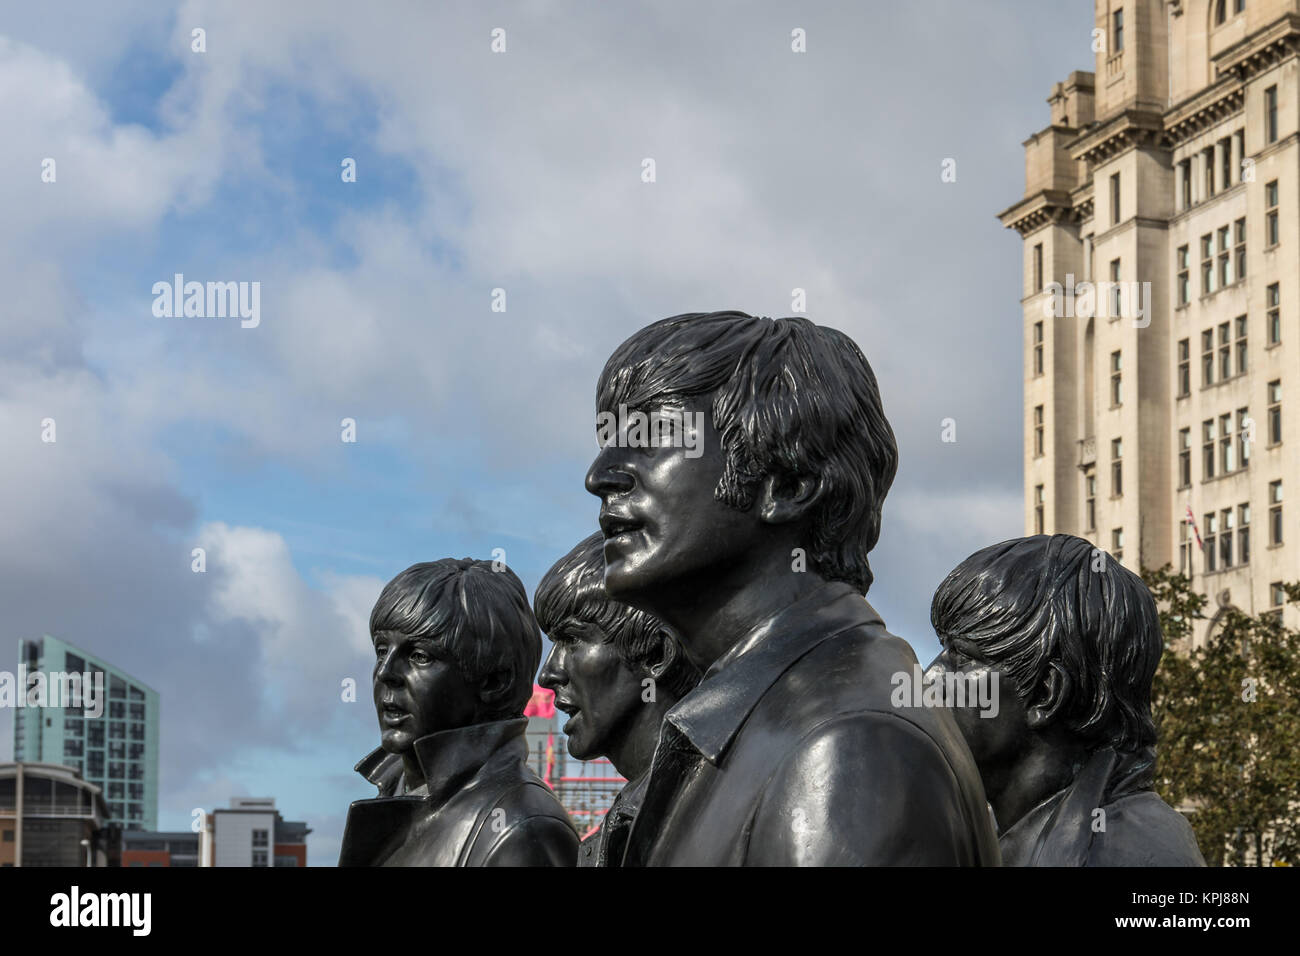 The Beatles statue detail, Pier Head, Liverpool, UK - Stock Image